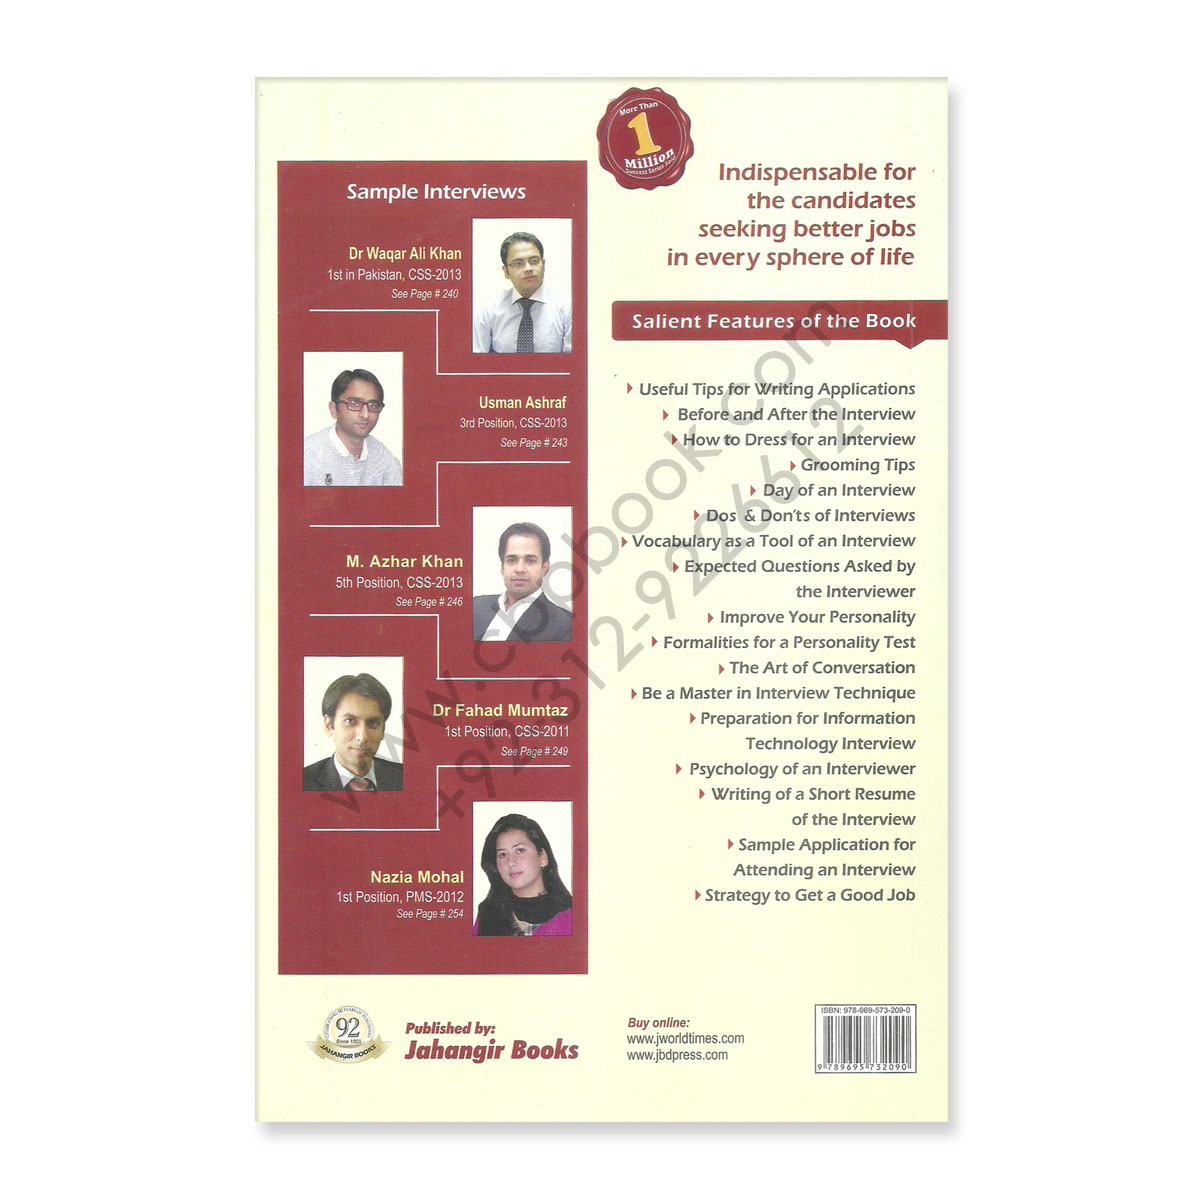 guide to interviews by zahid hussain anjum jahangir books guide to interviews by zahid hussain anjum jahangir books 5